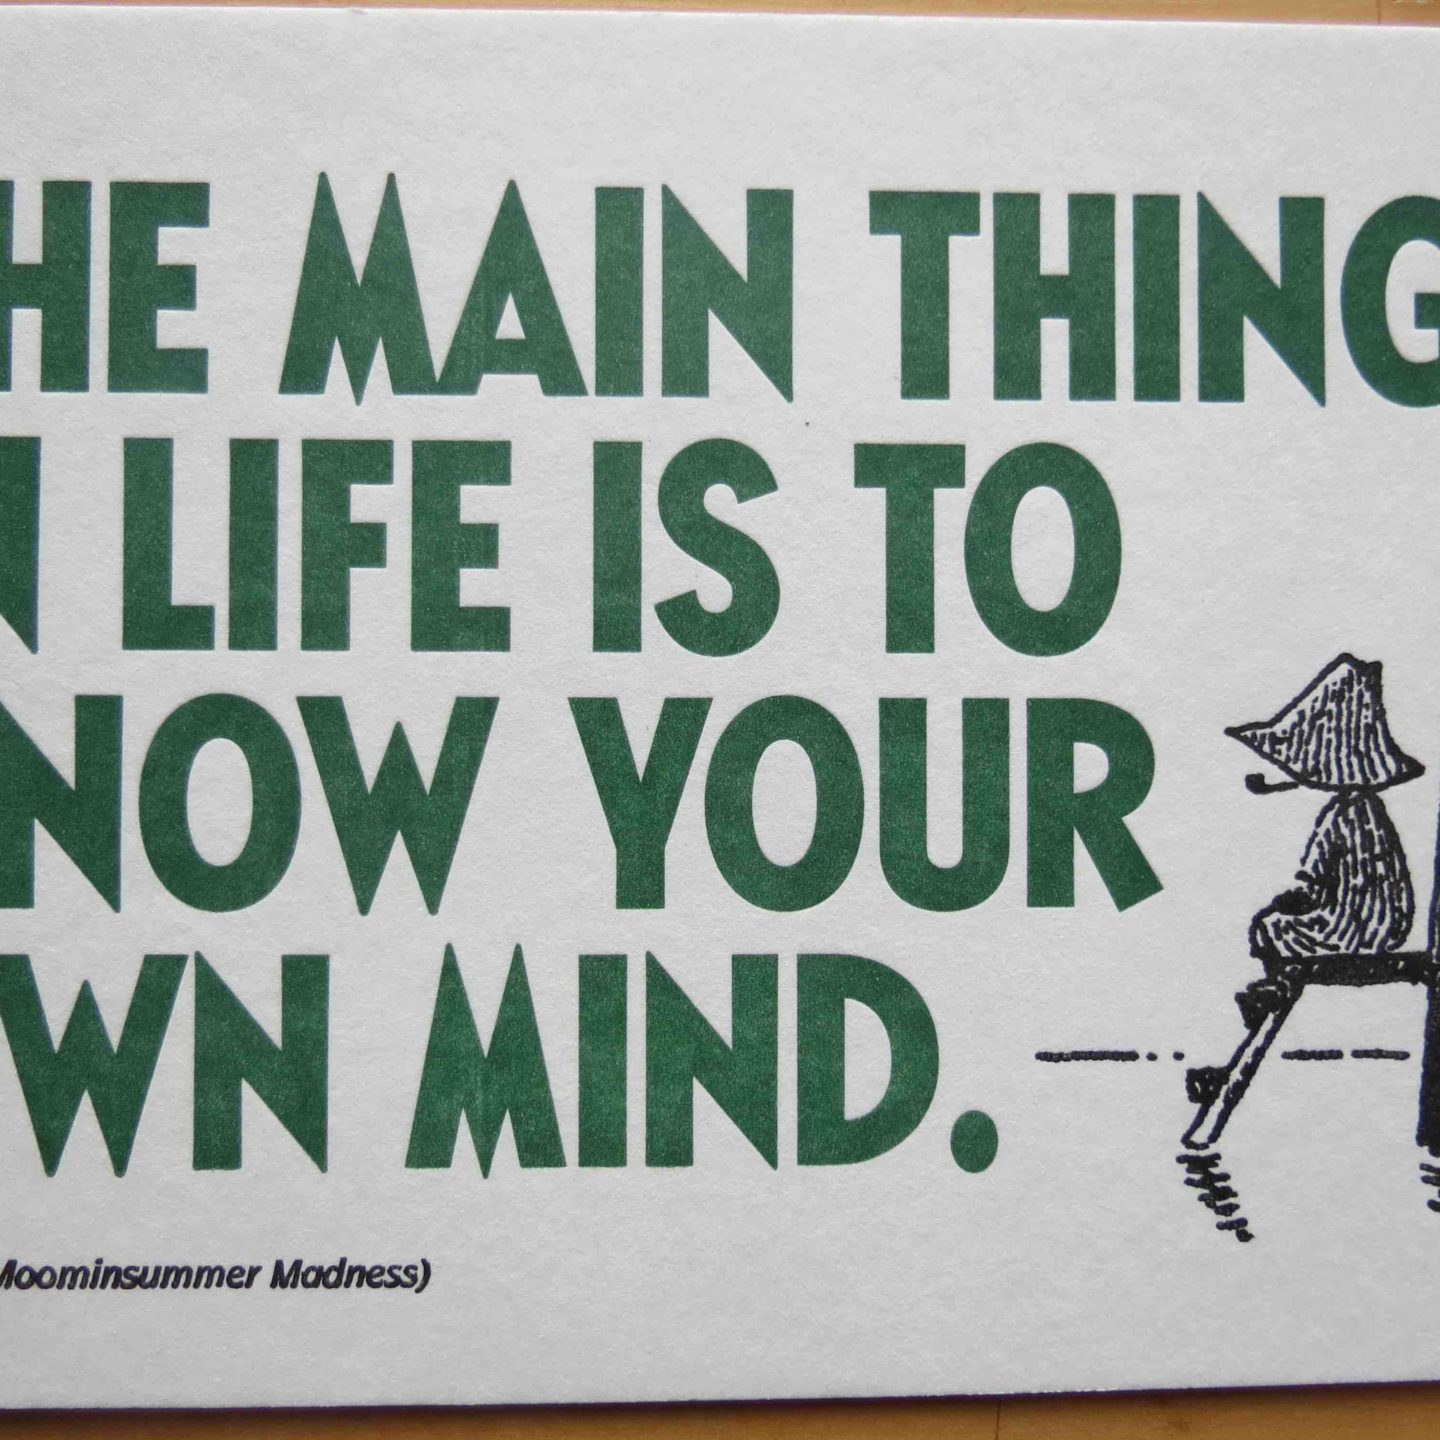 The philosophy of Snufkin pt.3 [Snufkin and Socrates on knowing yourself]